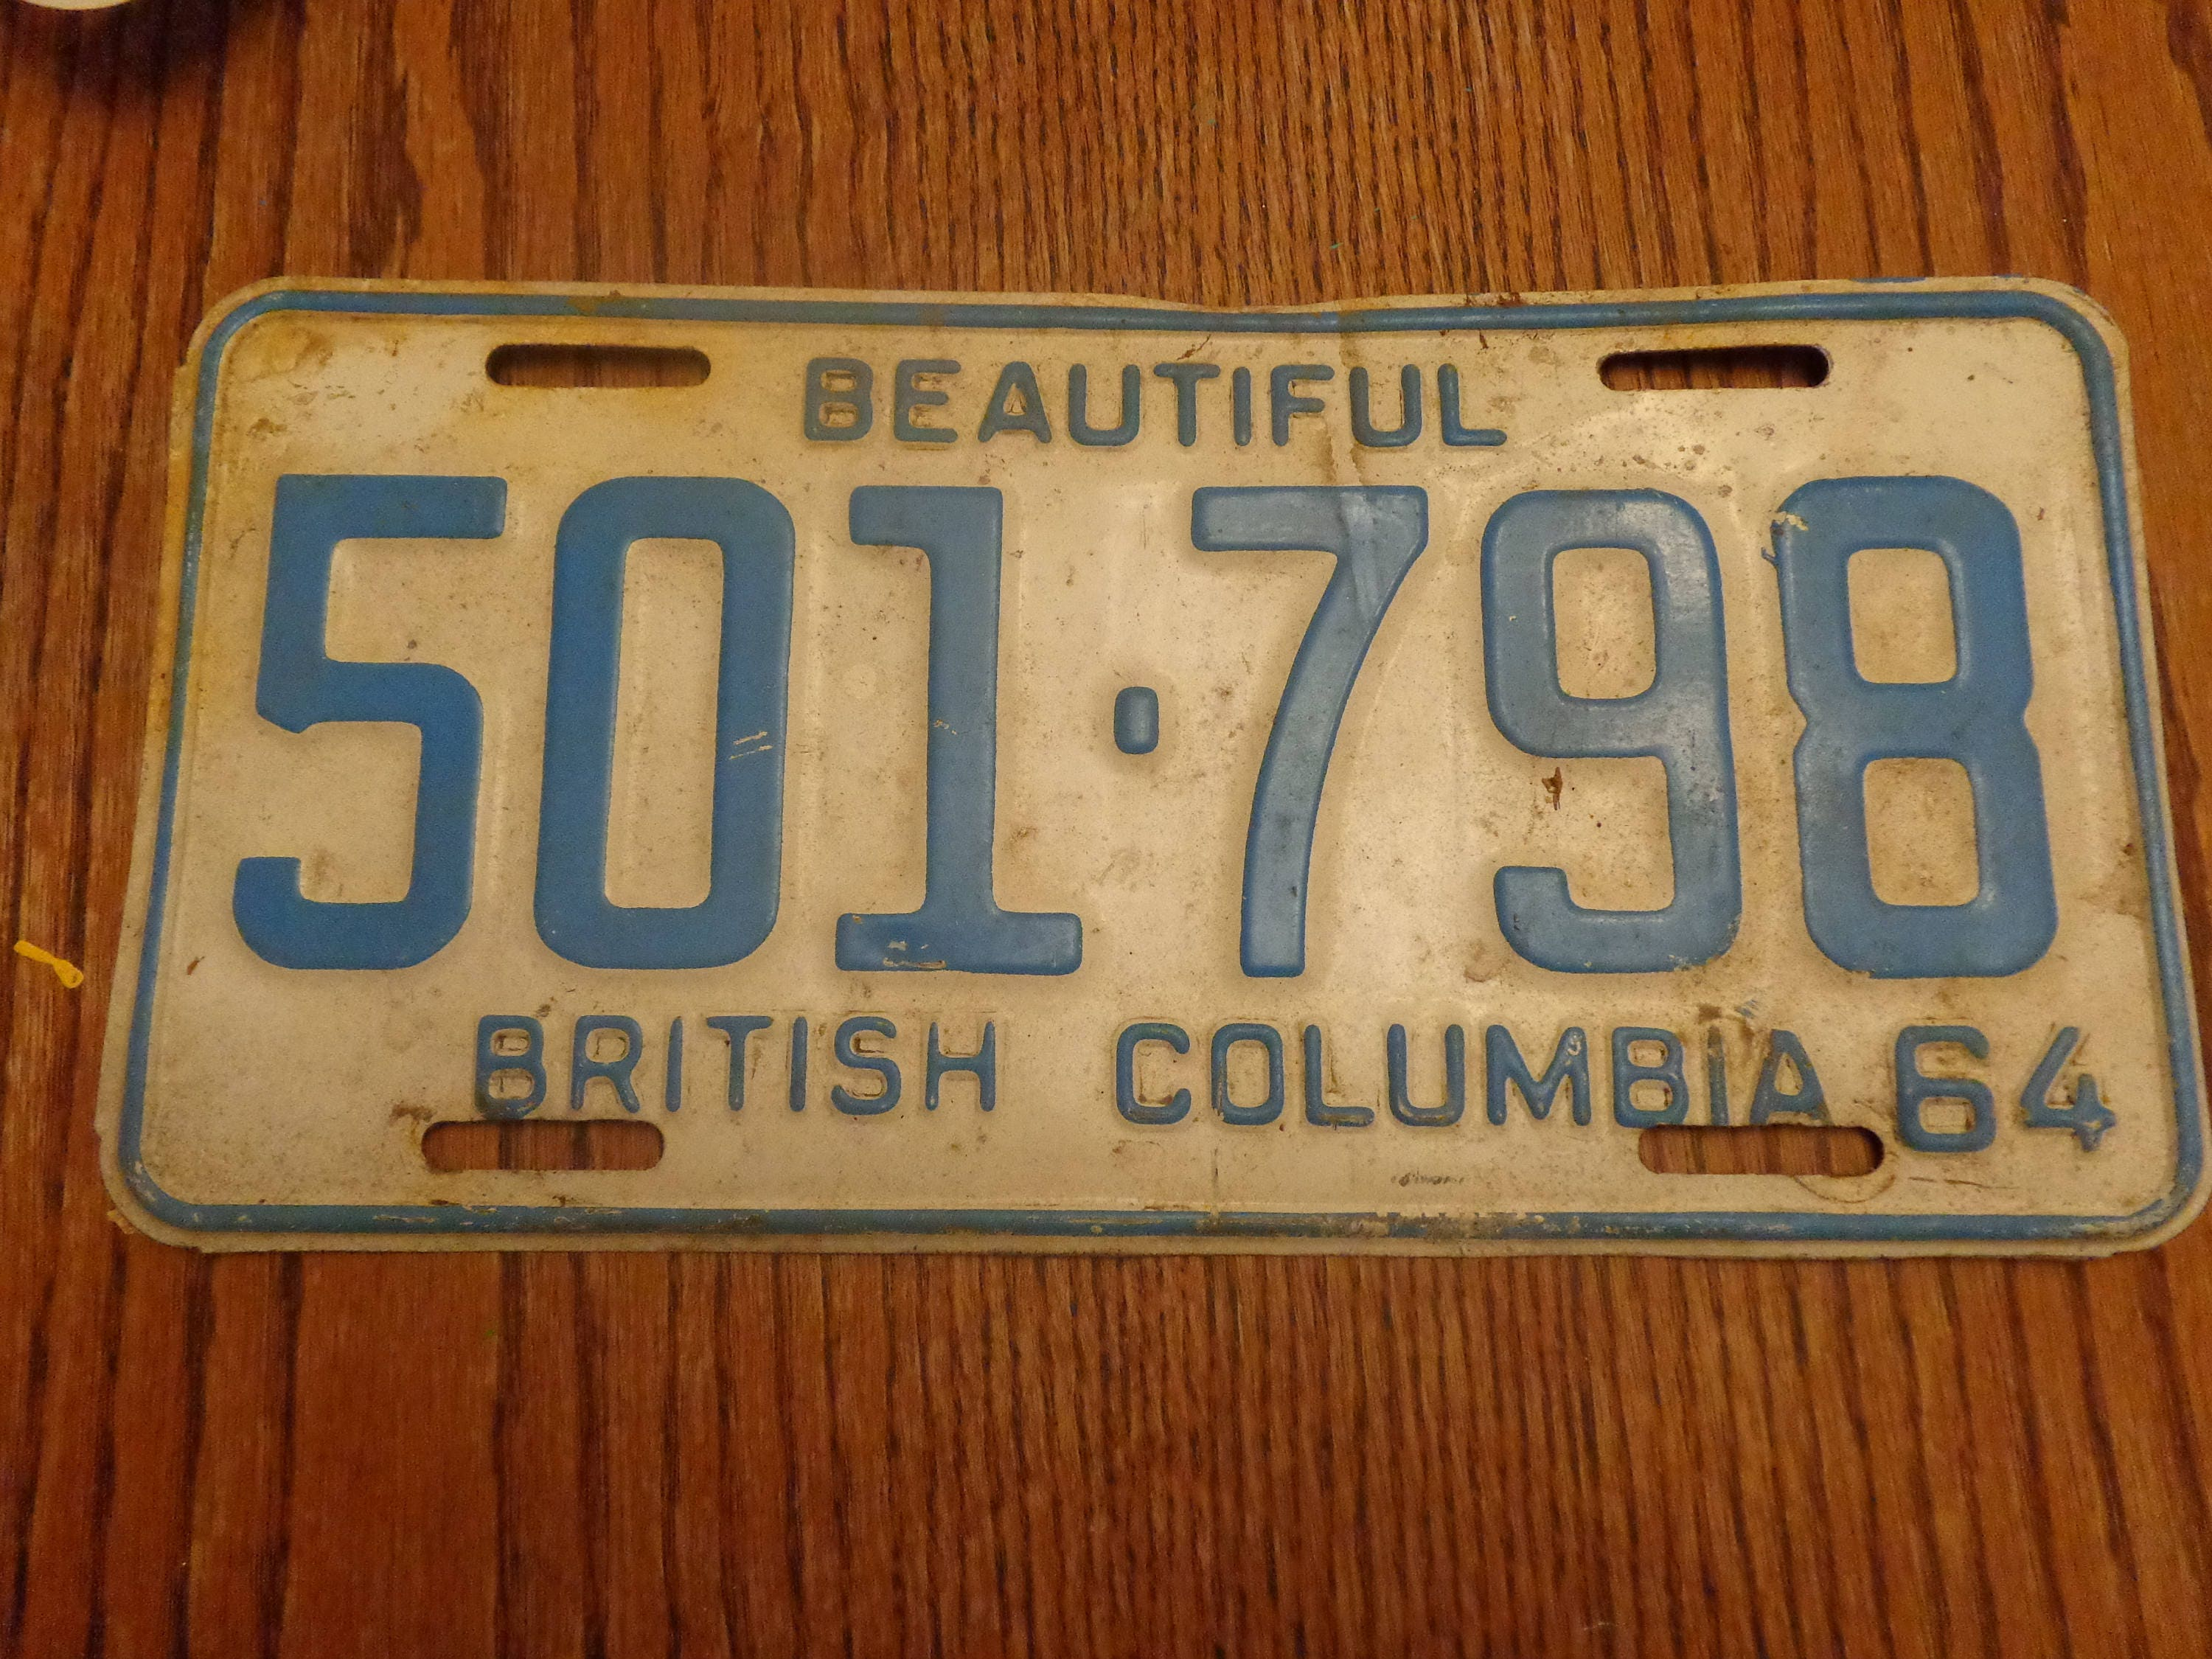 1964 Old British Columbia License Plate Vintage Rusty Old